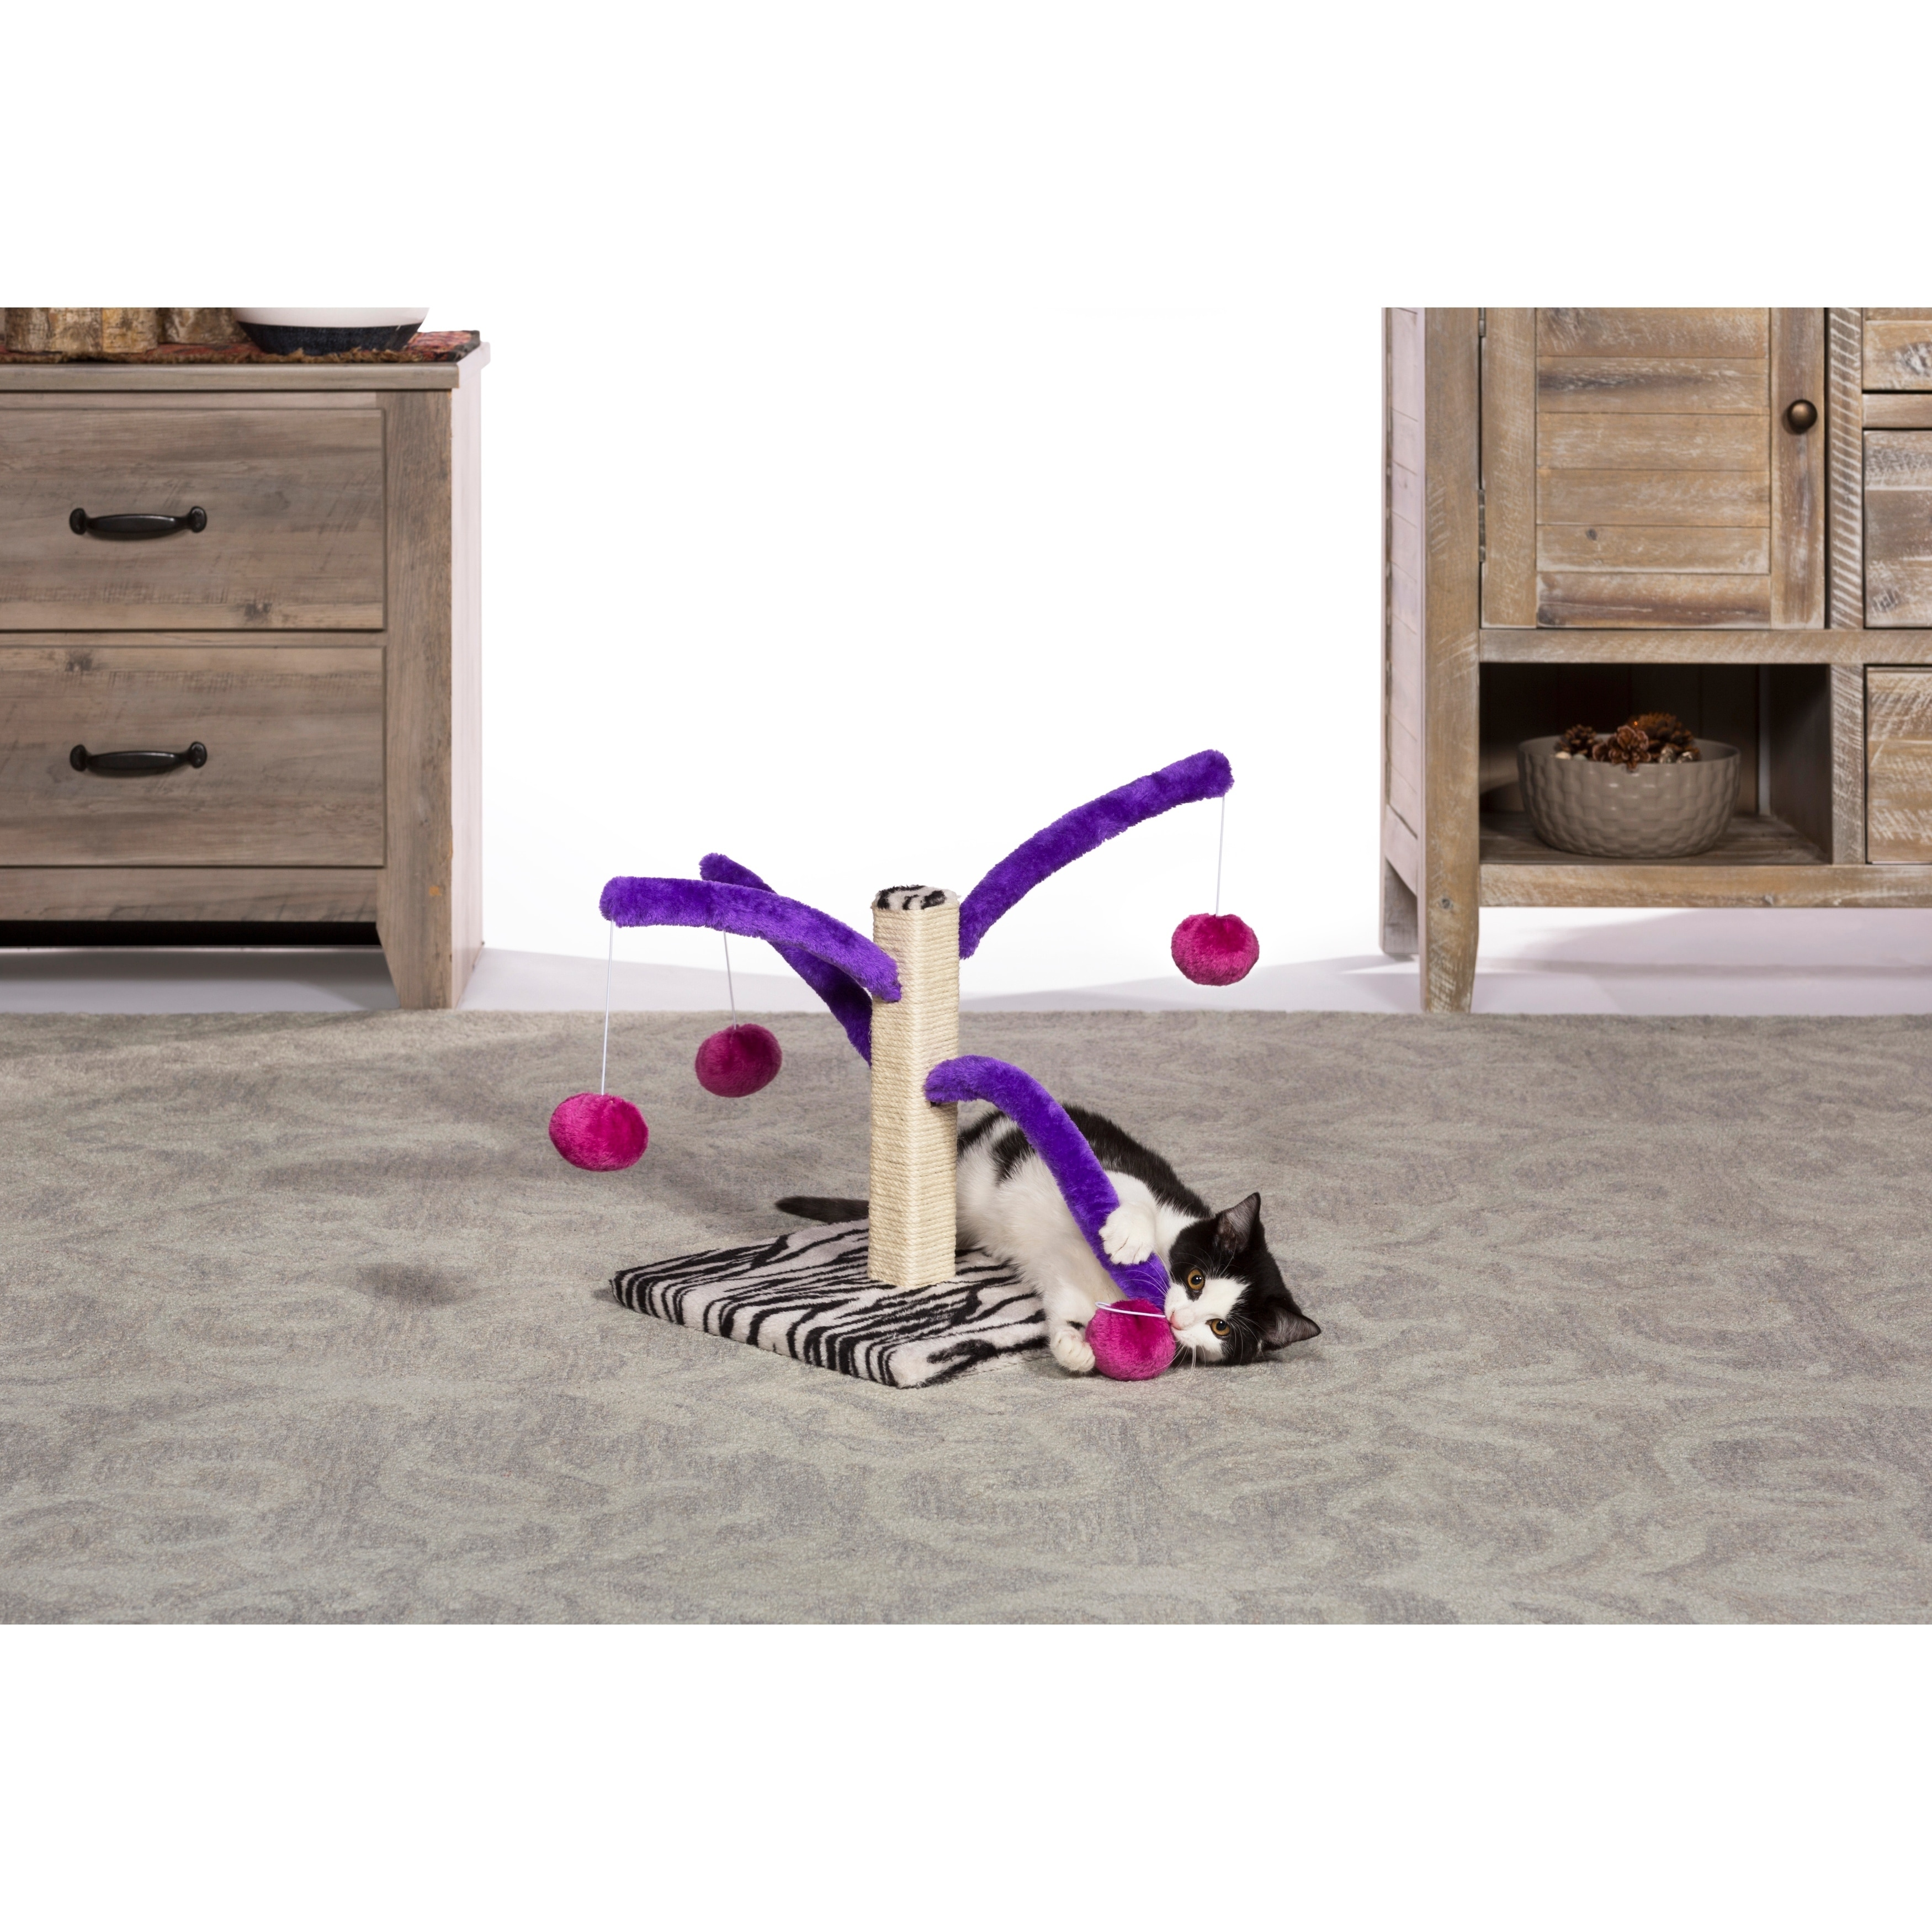 PREVUE PET PRODUCTS Kitty Power Paws Multi-Platform Posts with Tassel Toys Natural